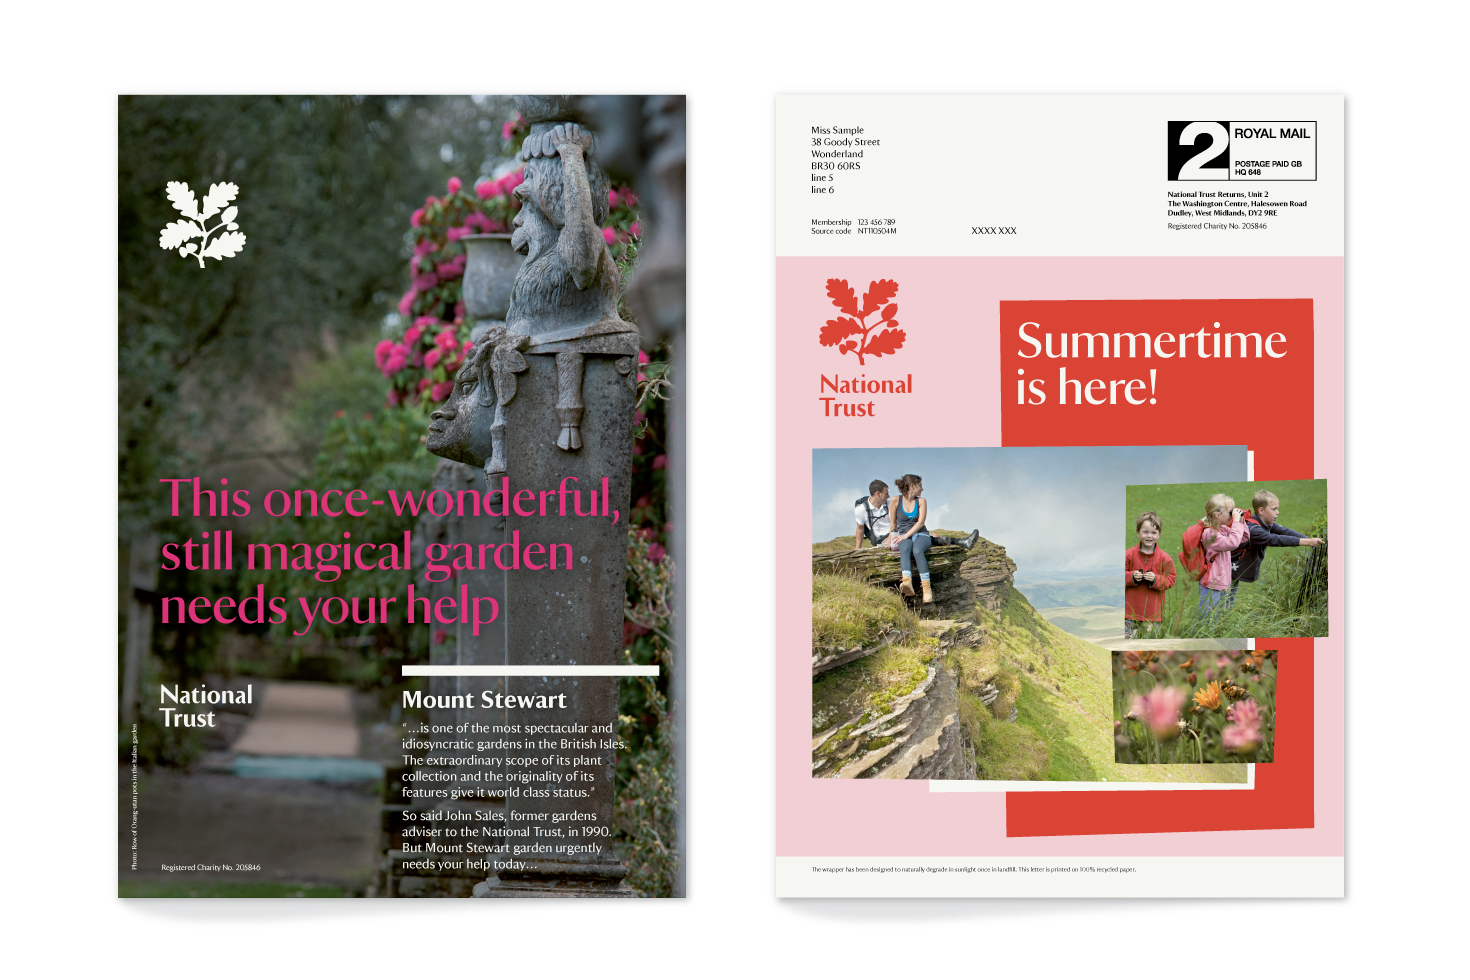 National Trust poster and mailing